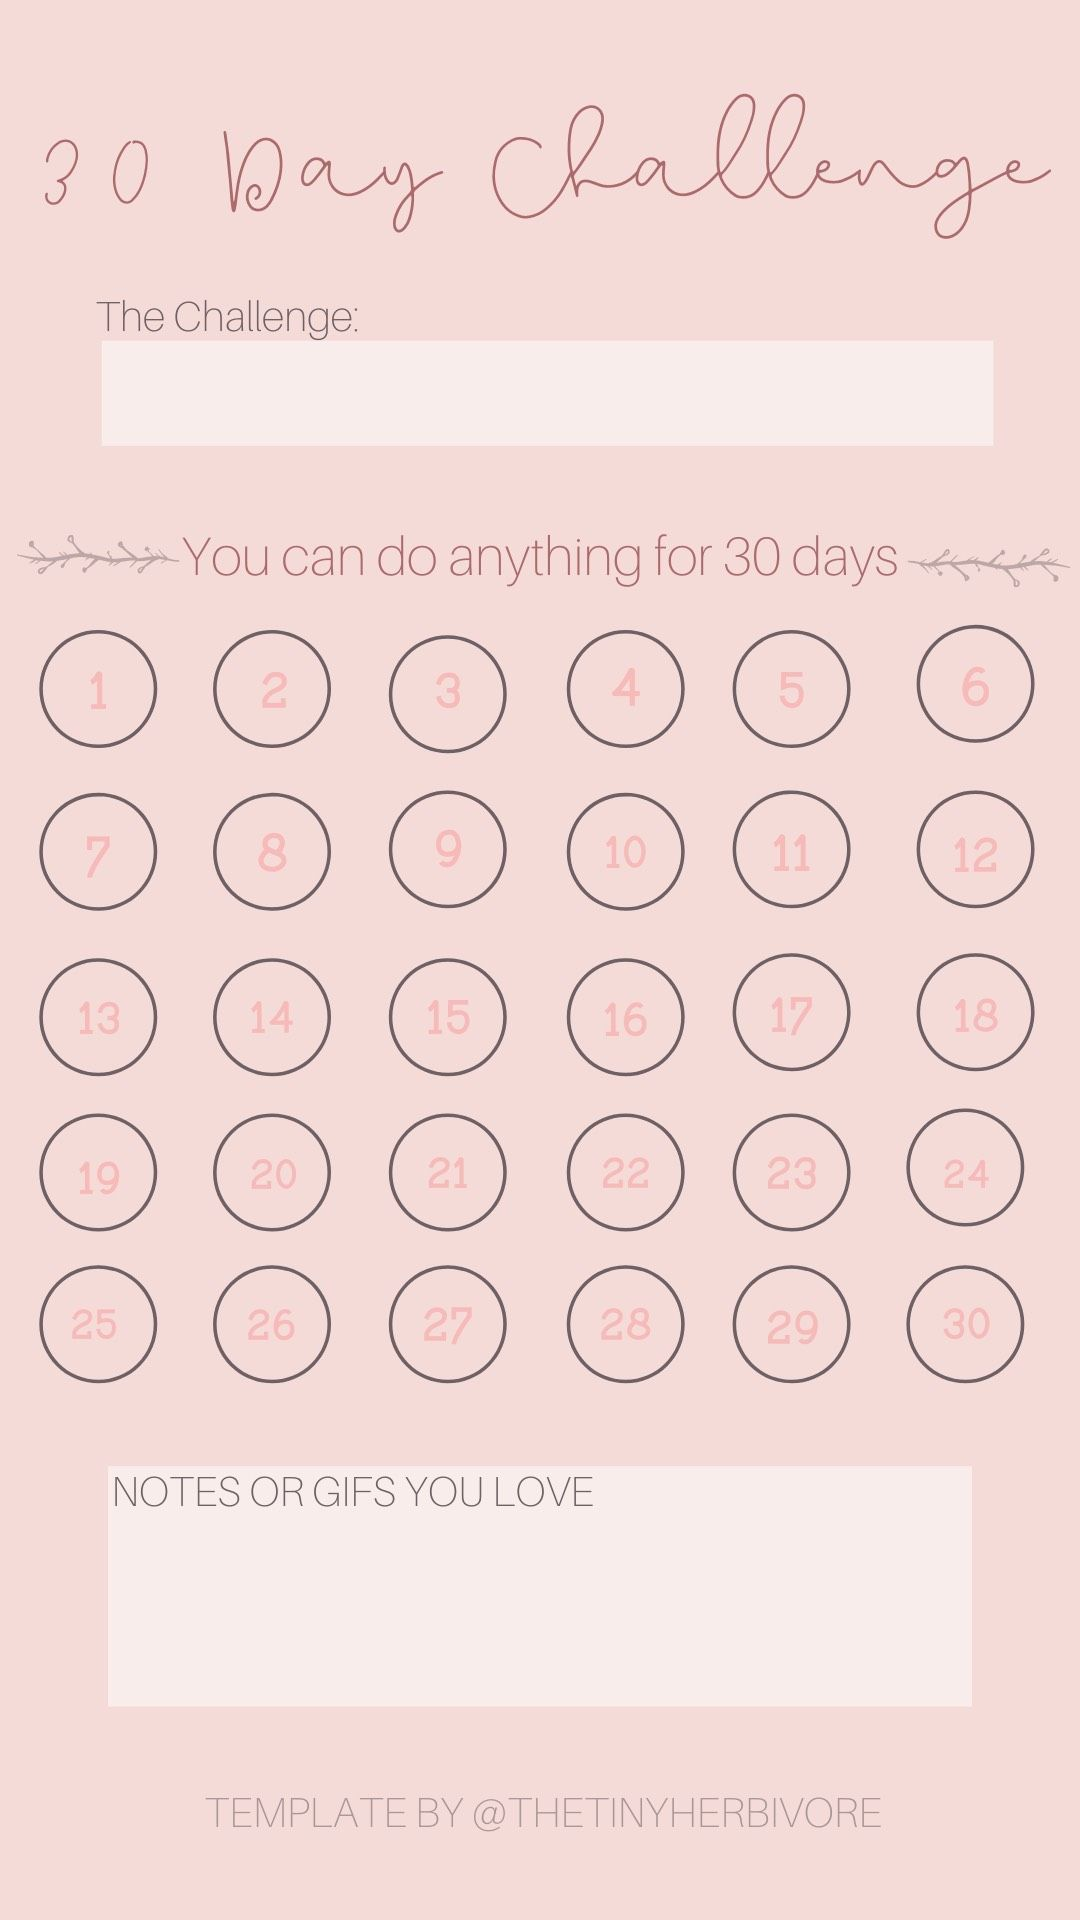 30 Day Challenge Instagram Story Template Thetinyherbivore 30 Day Instagram Challenge Instagram Template Instagram Story Template 30 day return policy template